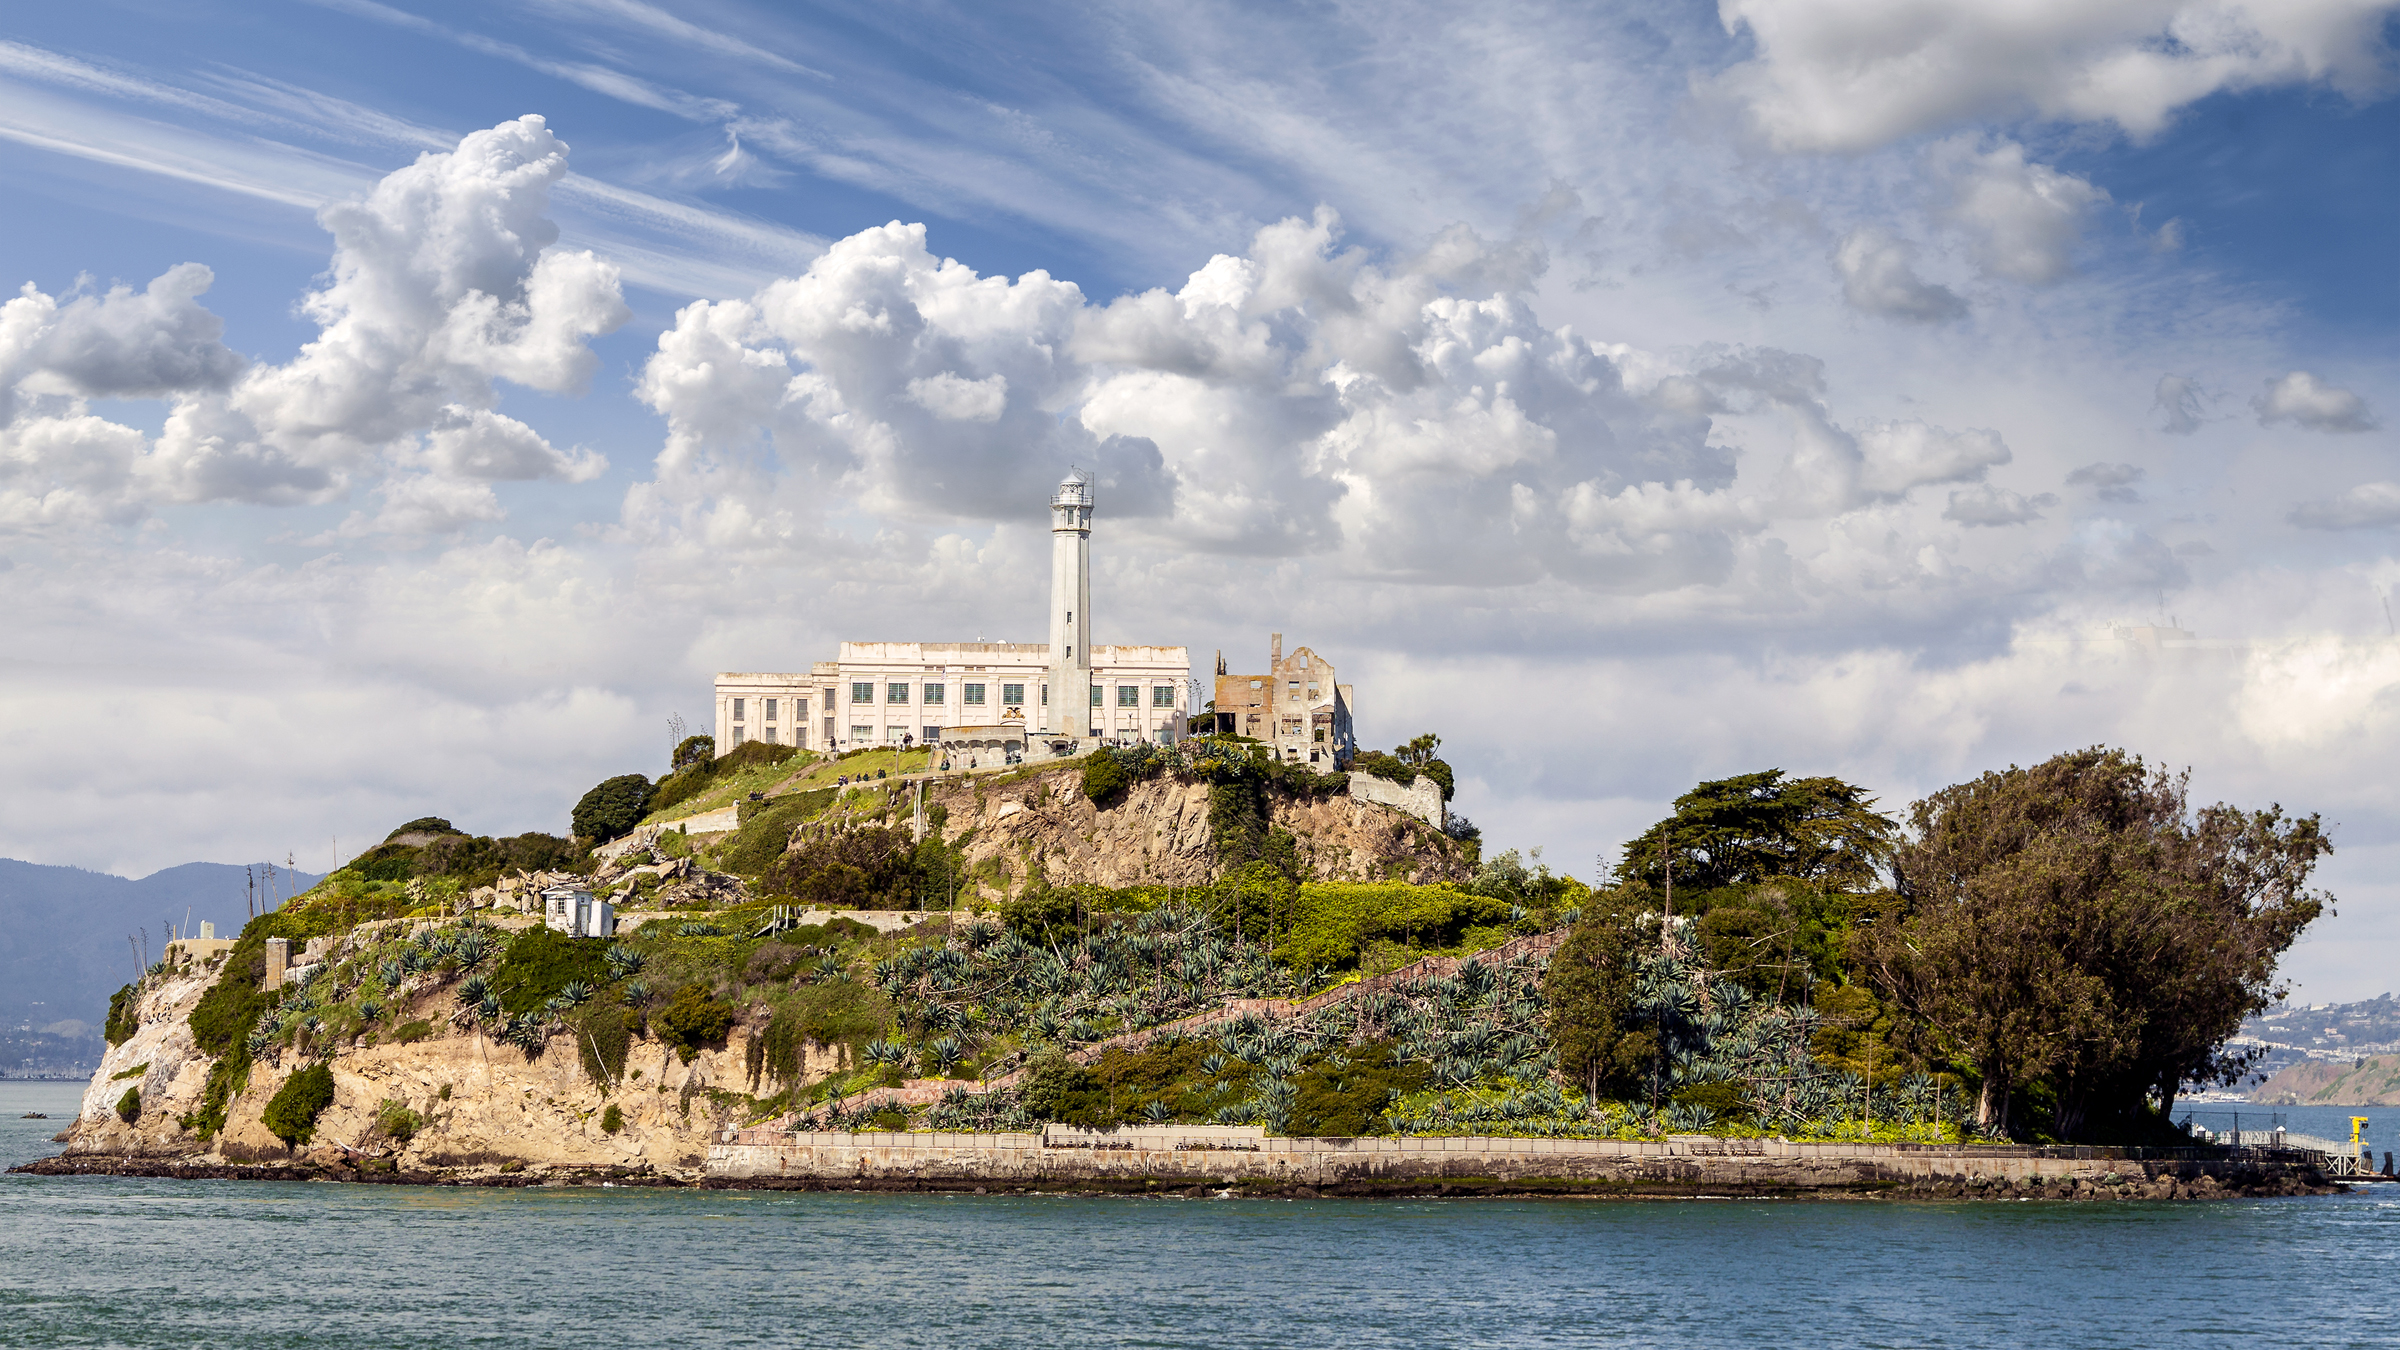 Scientists using Ground Penetrating Radar reveals this secret beneath Alcatraz Penitentiary